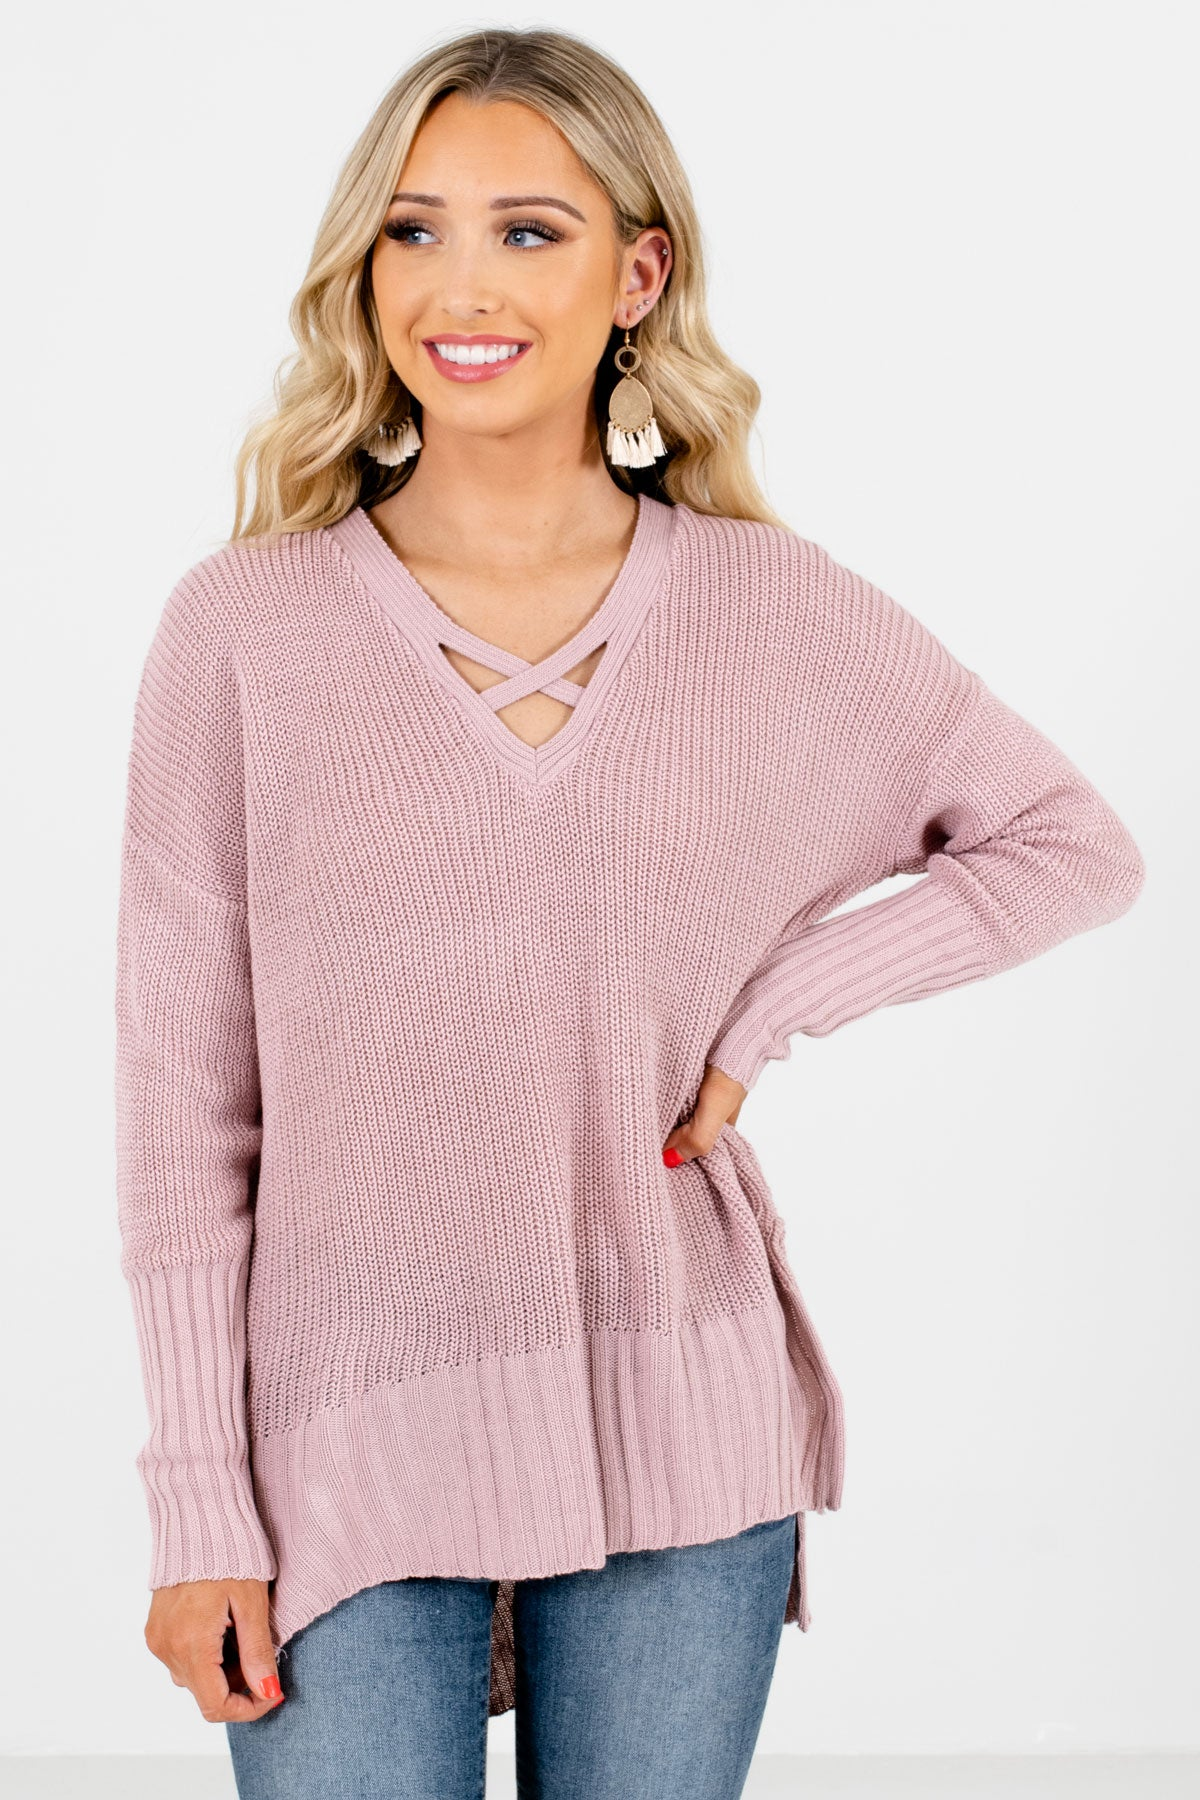 Pink High-Quality Knit Material Boutique Sweaters for Women